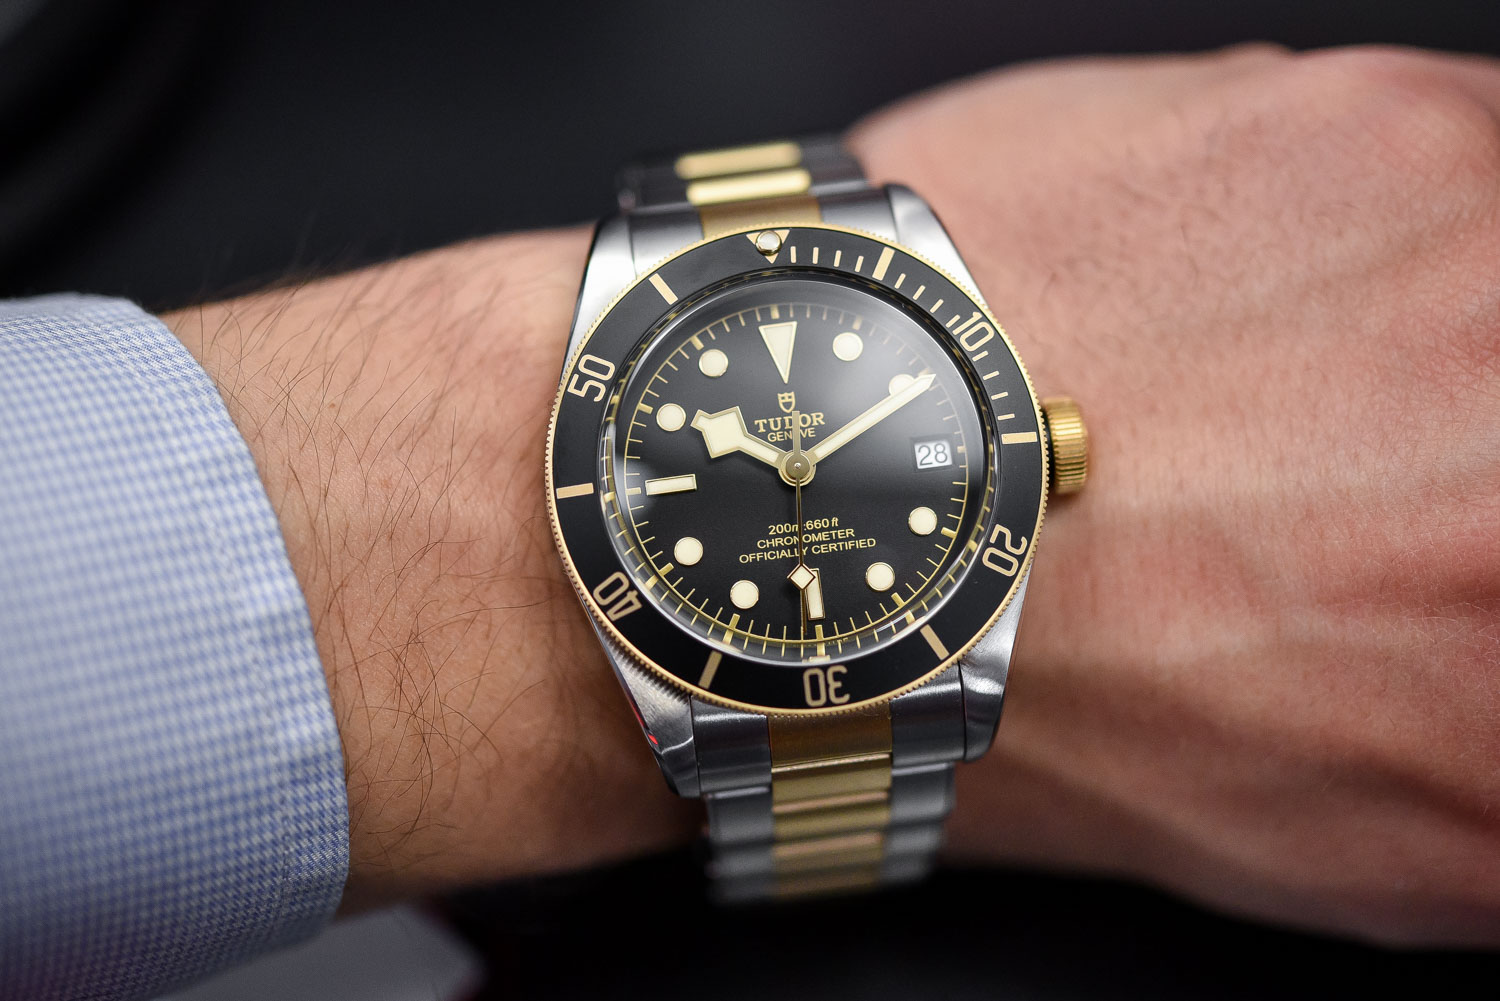 Tudor Black Bay Steel and Gold Date - Top 10 Baselworld 2017